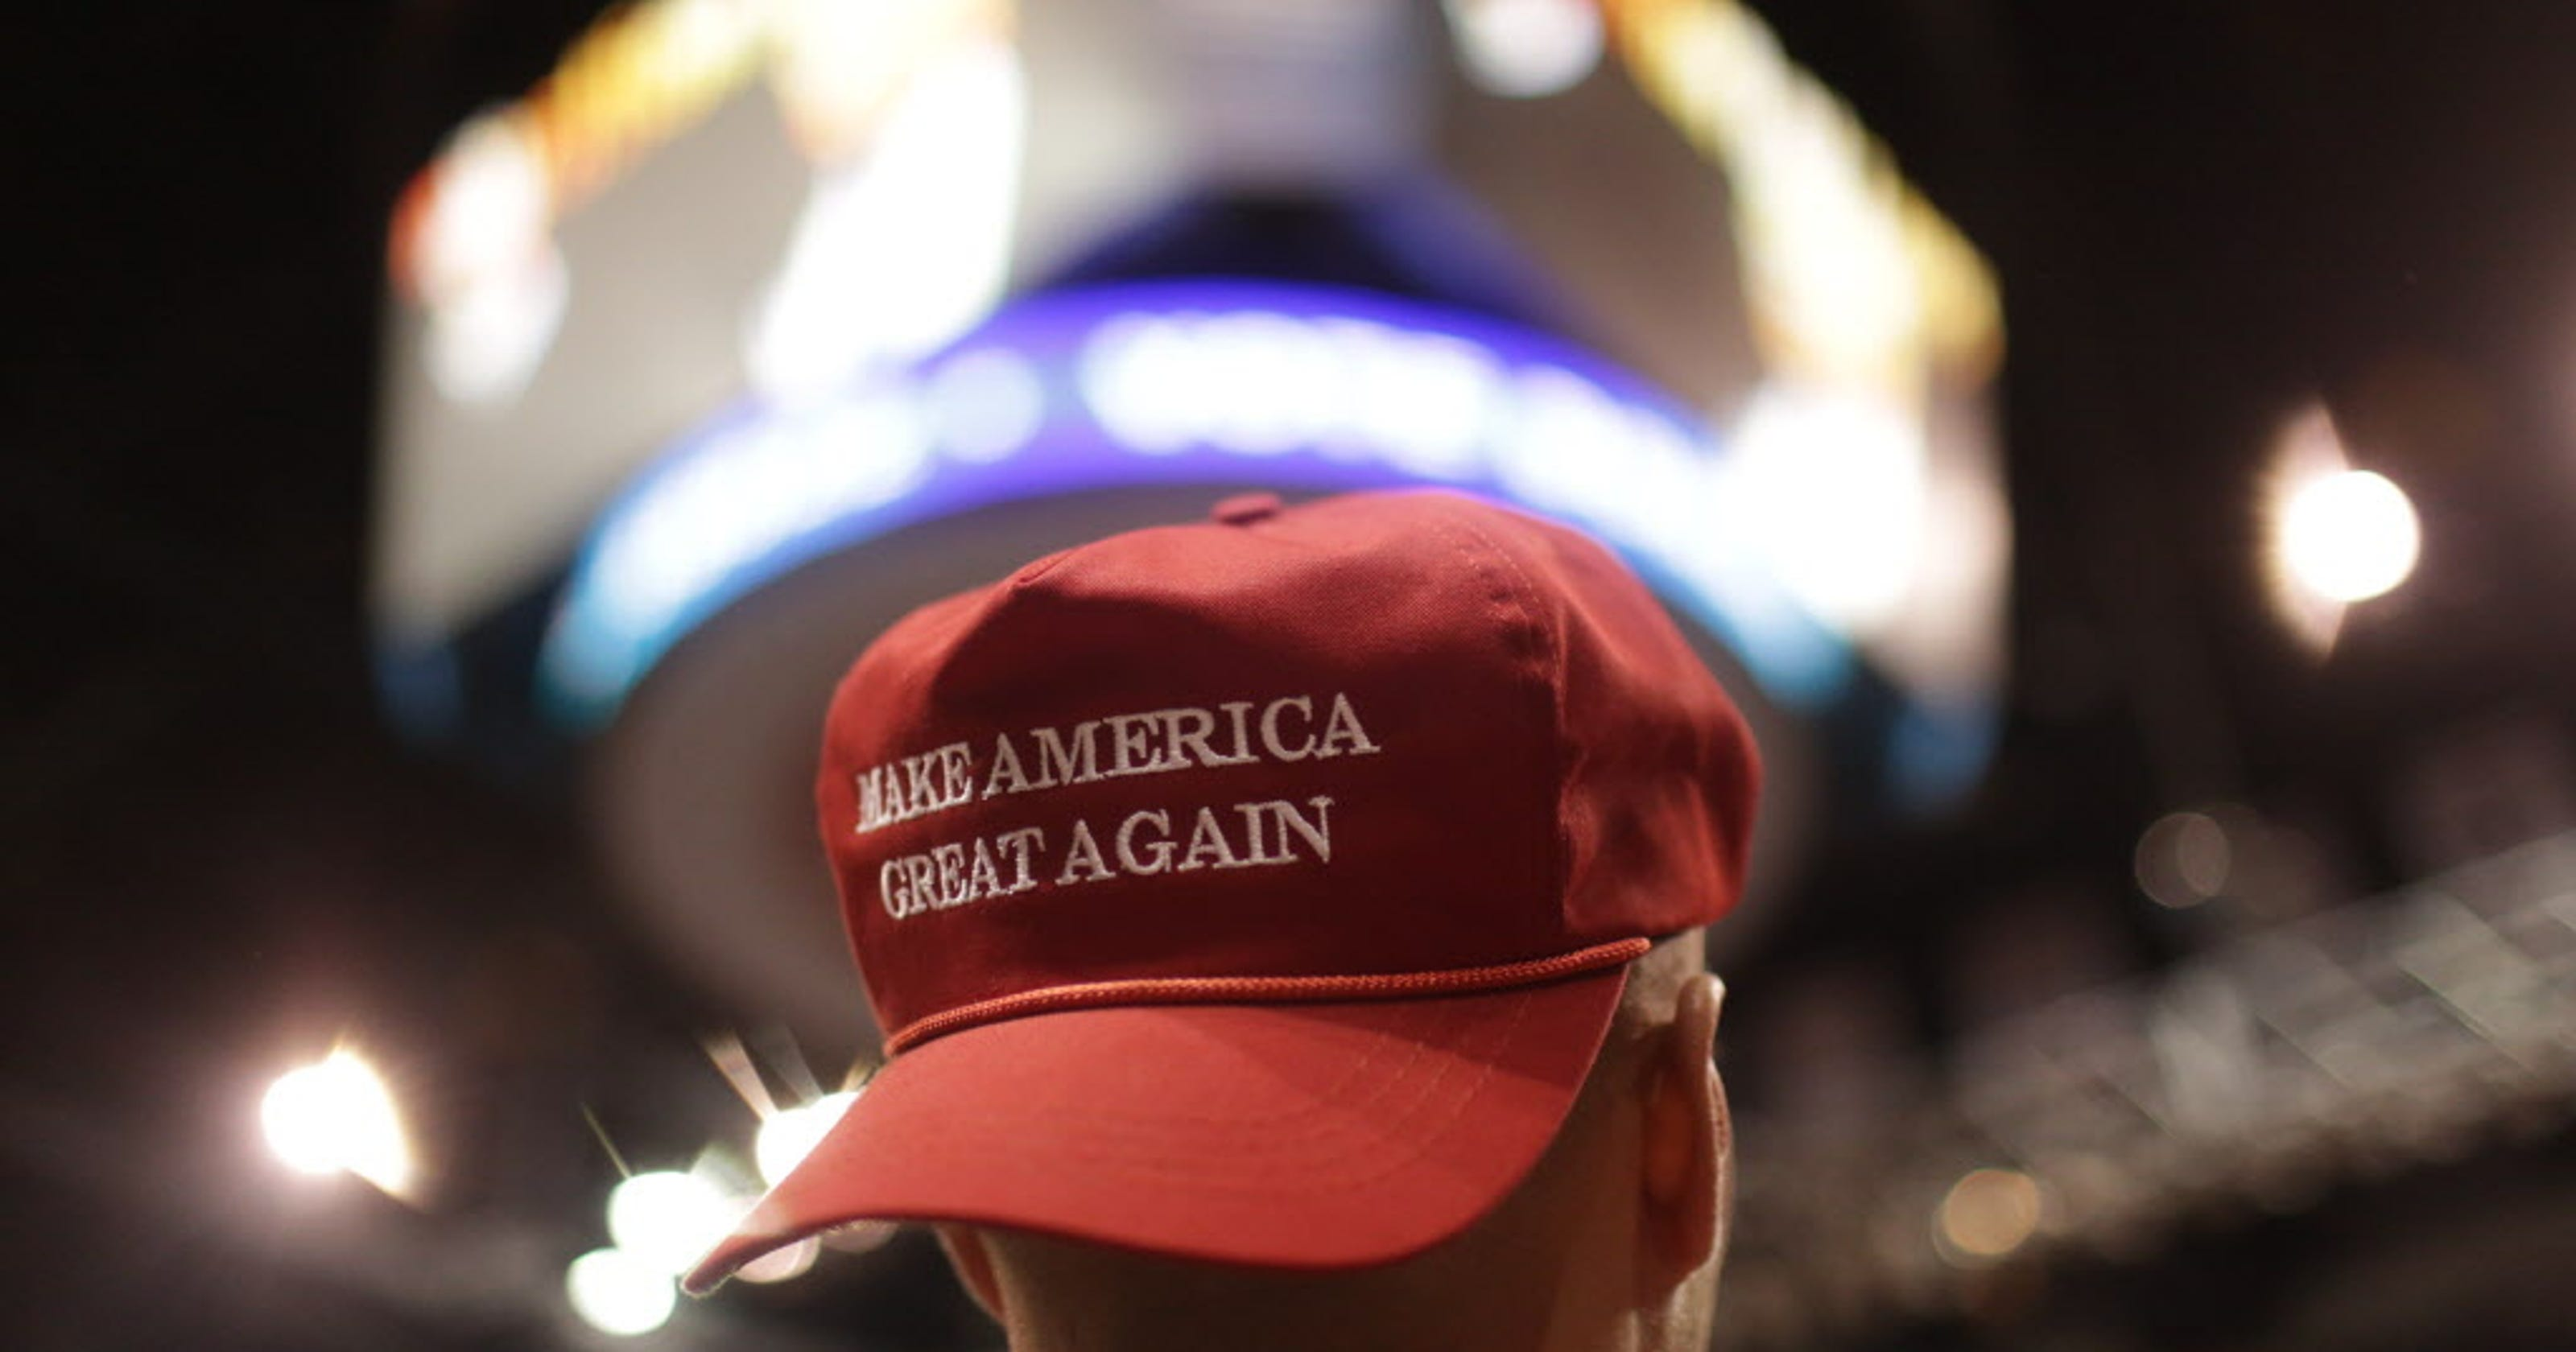 52b7a40d5b626 Massachusetts woman who knocked off man's MAGA hat faces deportation